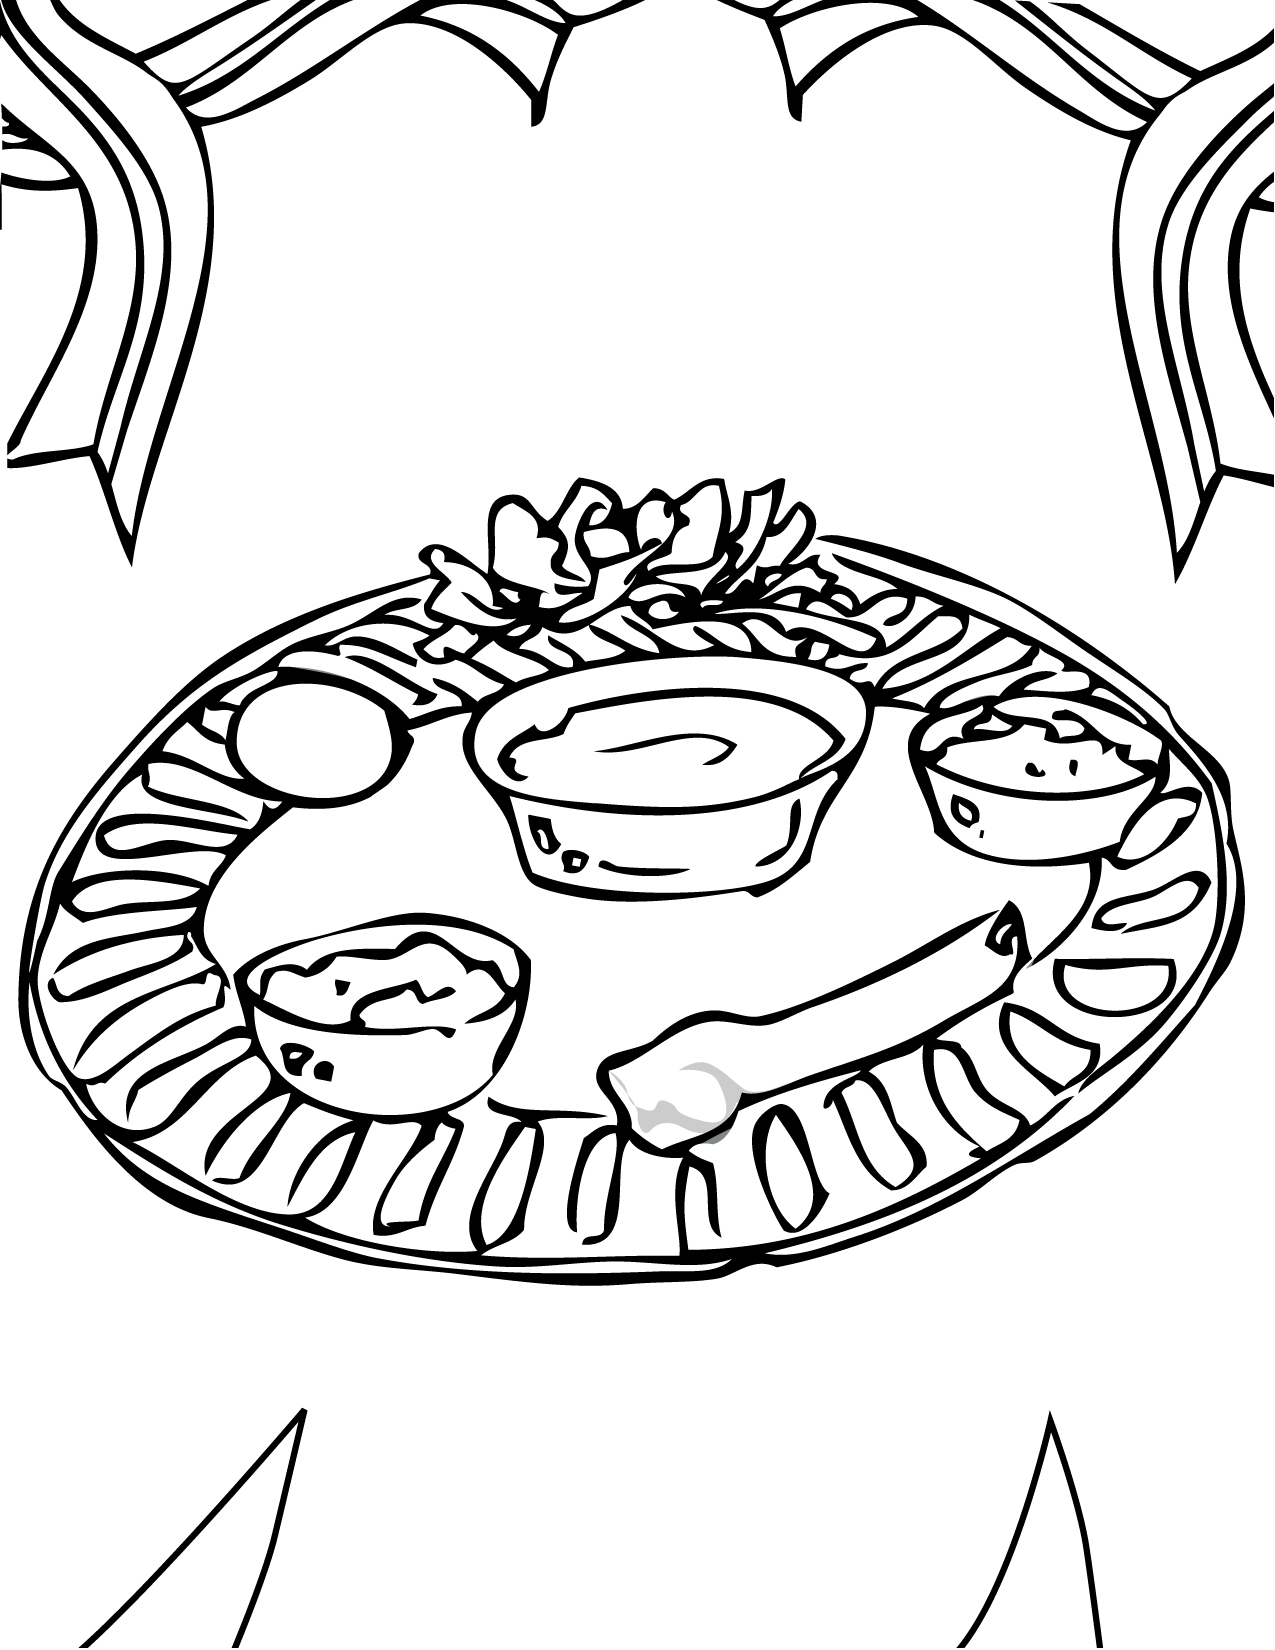 passover - Passover Coloring Pages Printable